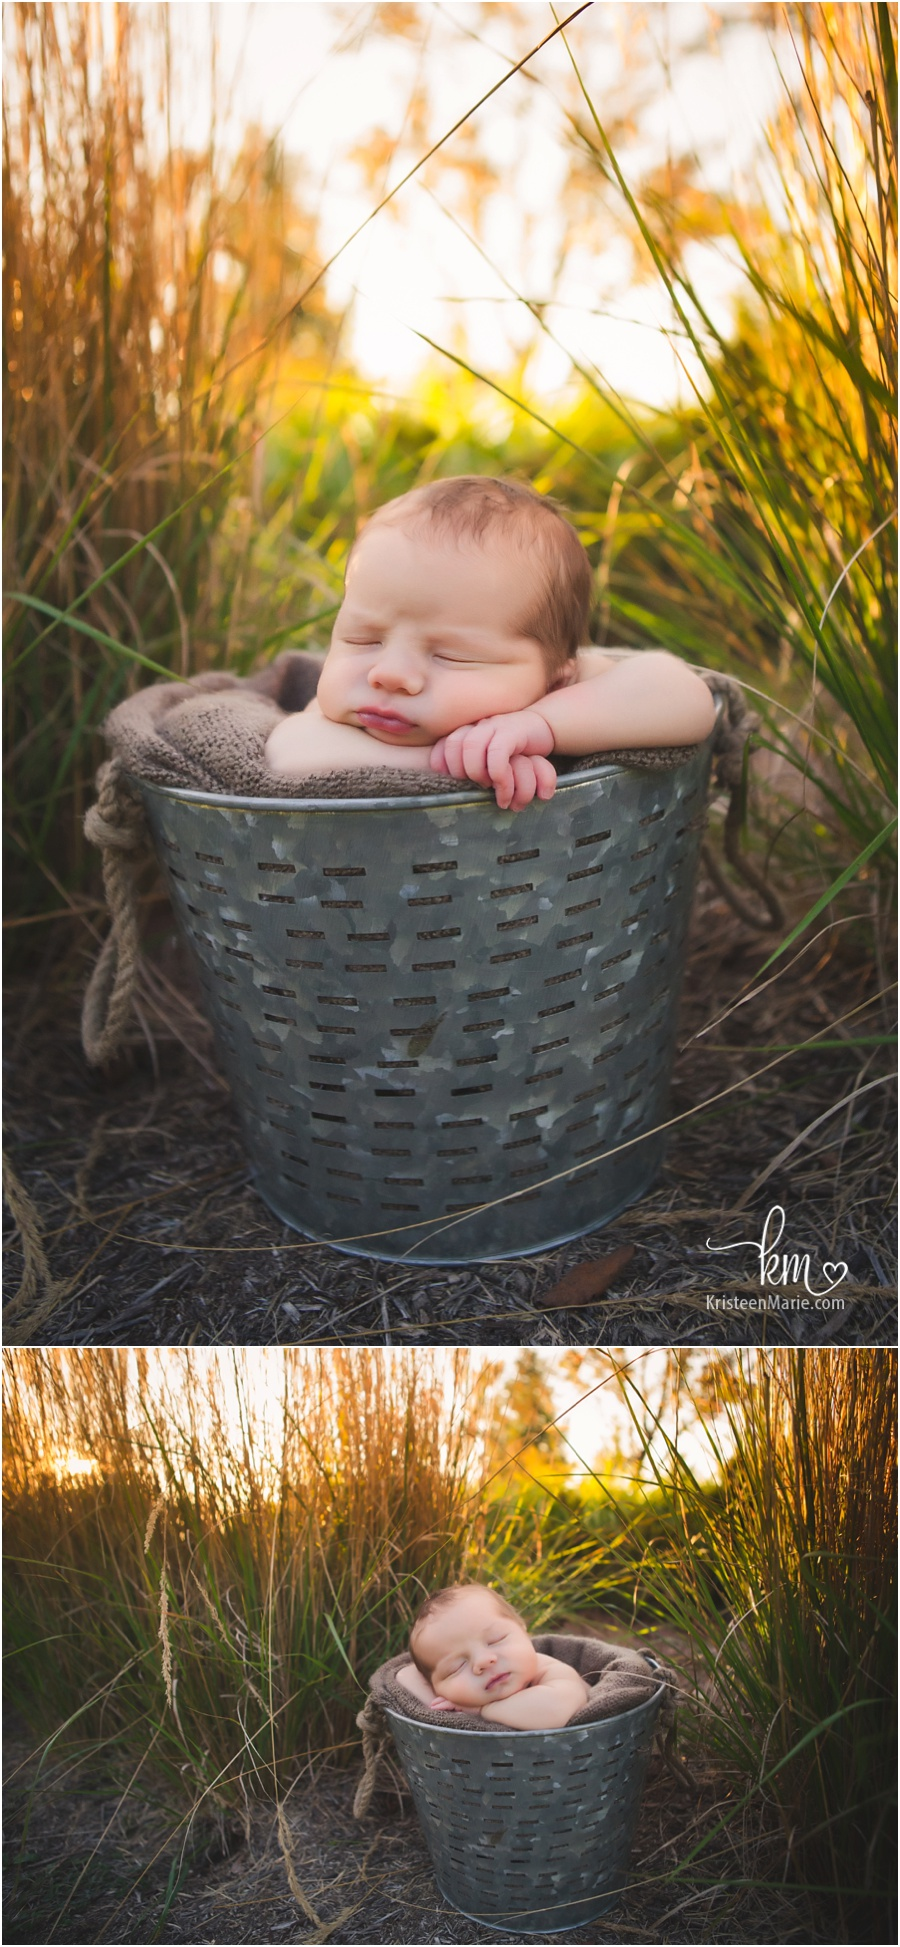 newborn baby in a bucket at sunset